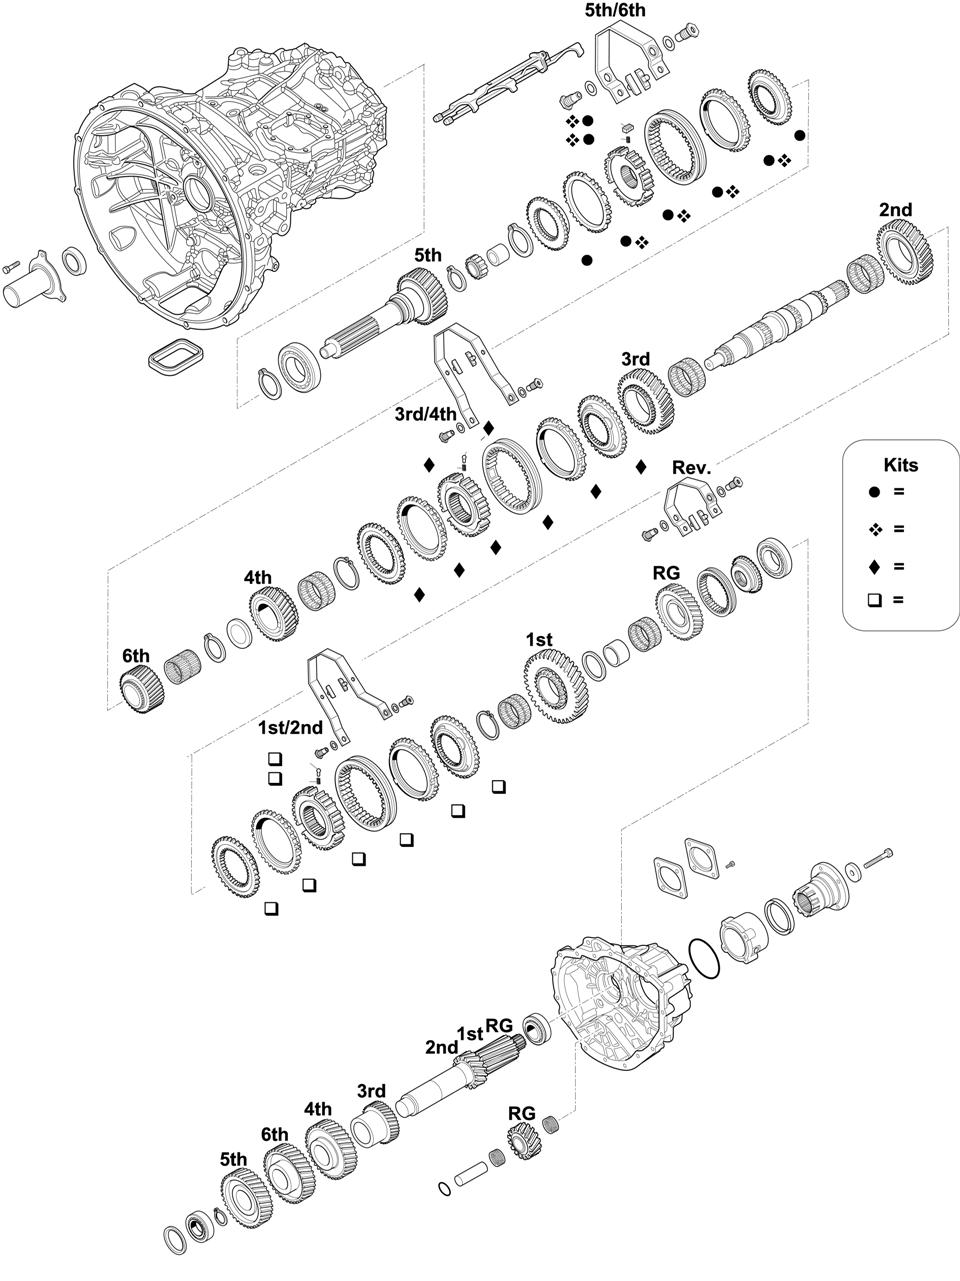 GEARBOX: ZTO1006 (6S 1000 TO) FL